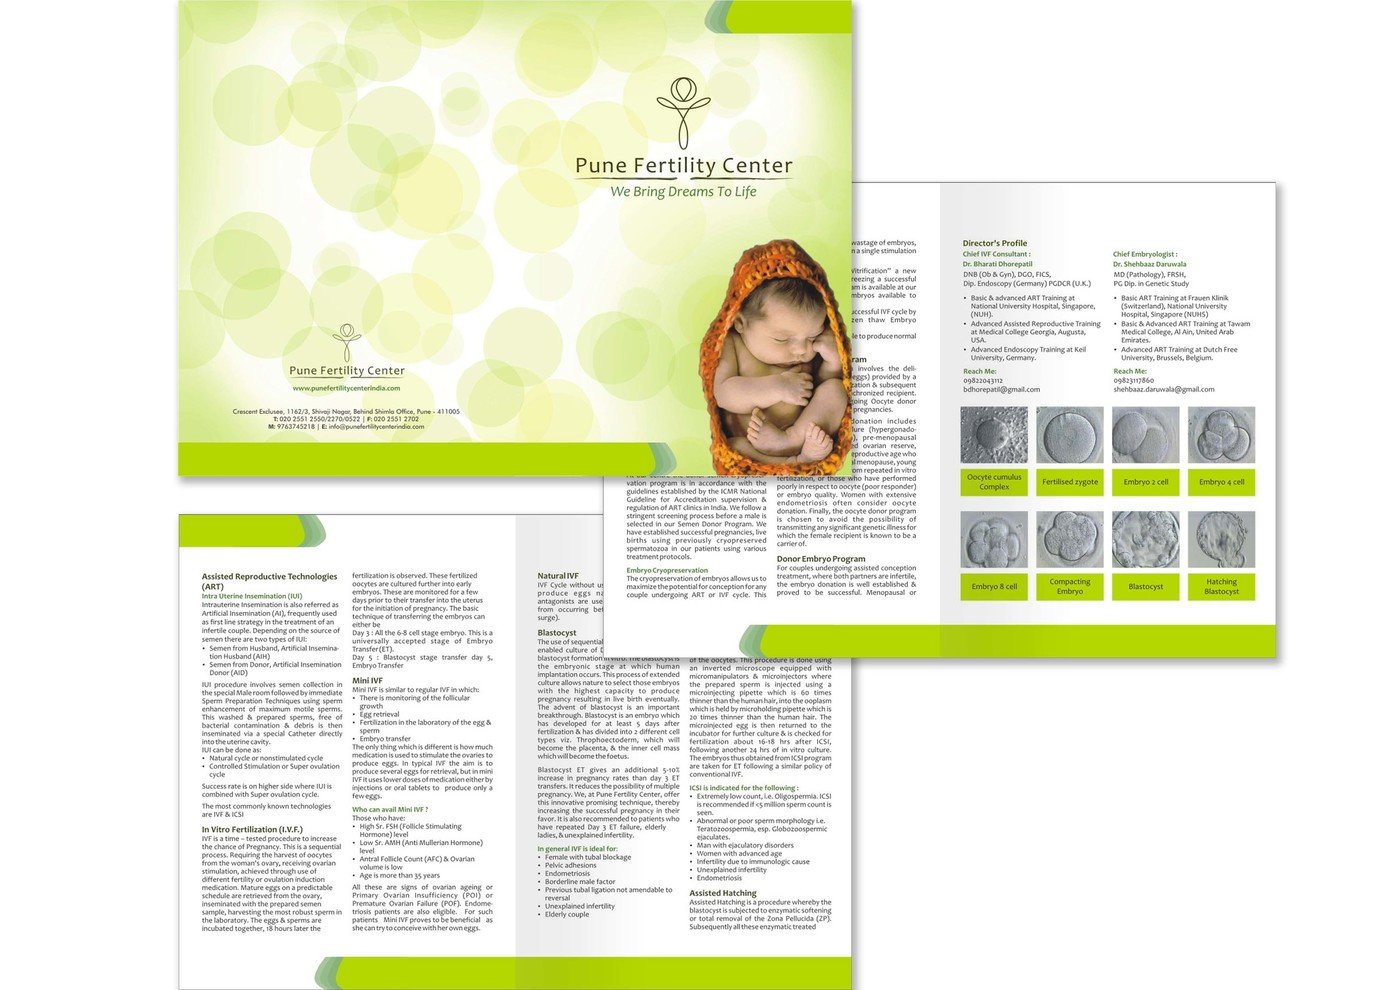 Brand Identity for Pune Fertility Center by Trina Kundu at